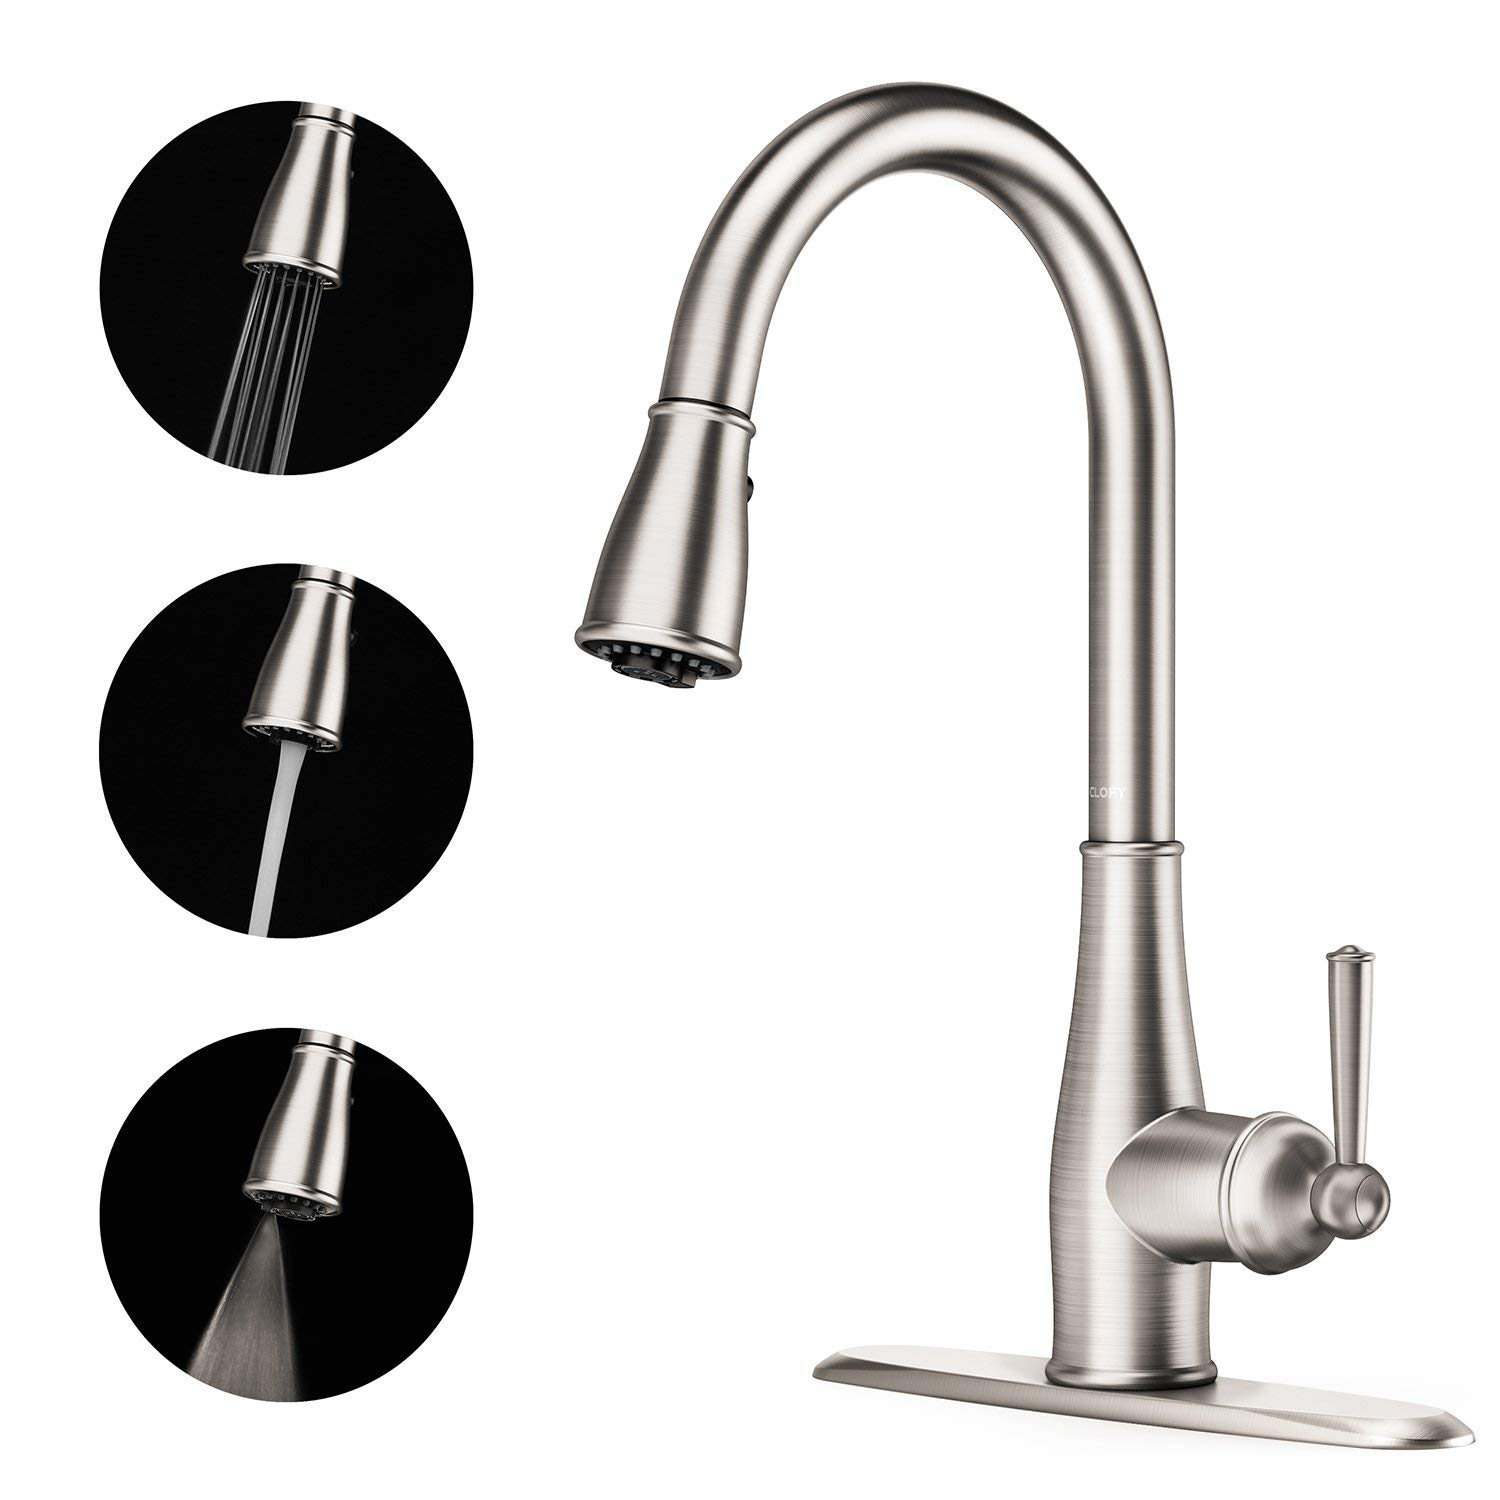 Full Copper Kitchen Faucet - 3 Function Spray Single Handle High Arc Brushed Nickel Pull out Kitchen Faucet, Lead Free Anti-Fingerprint Kitchen Sink Faucets with Pull down Sprayer